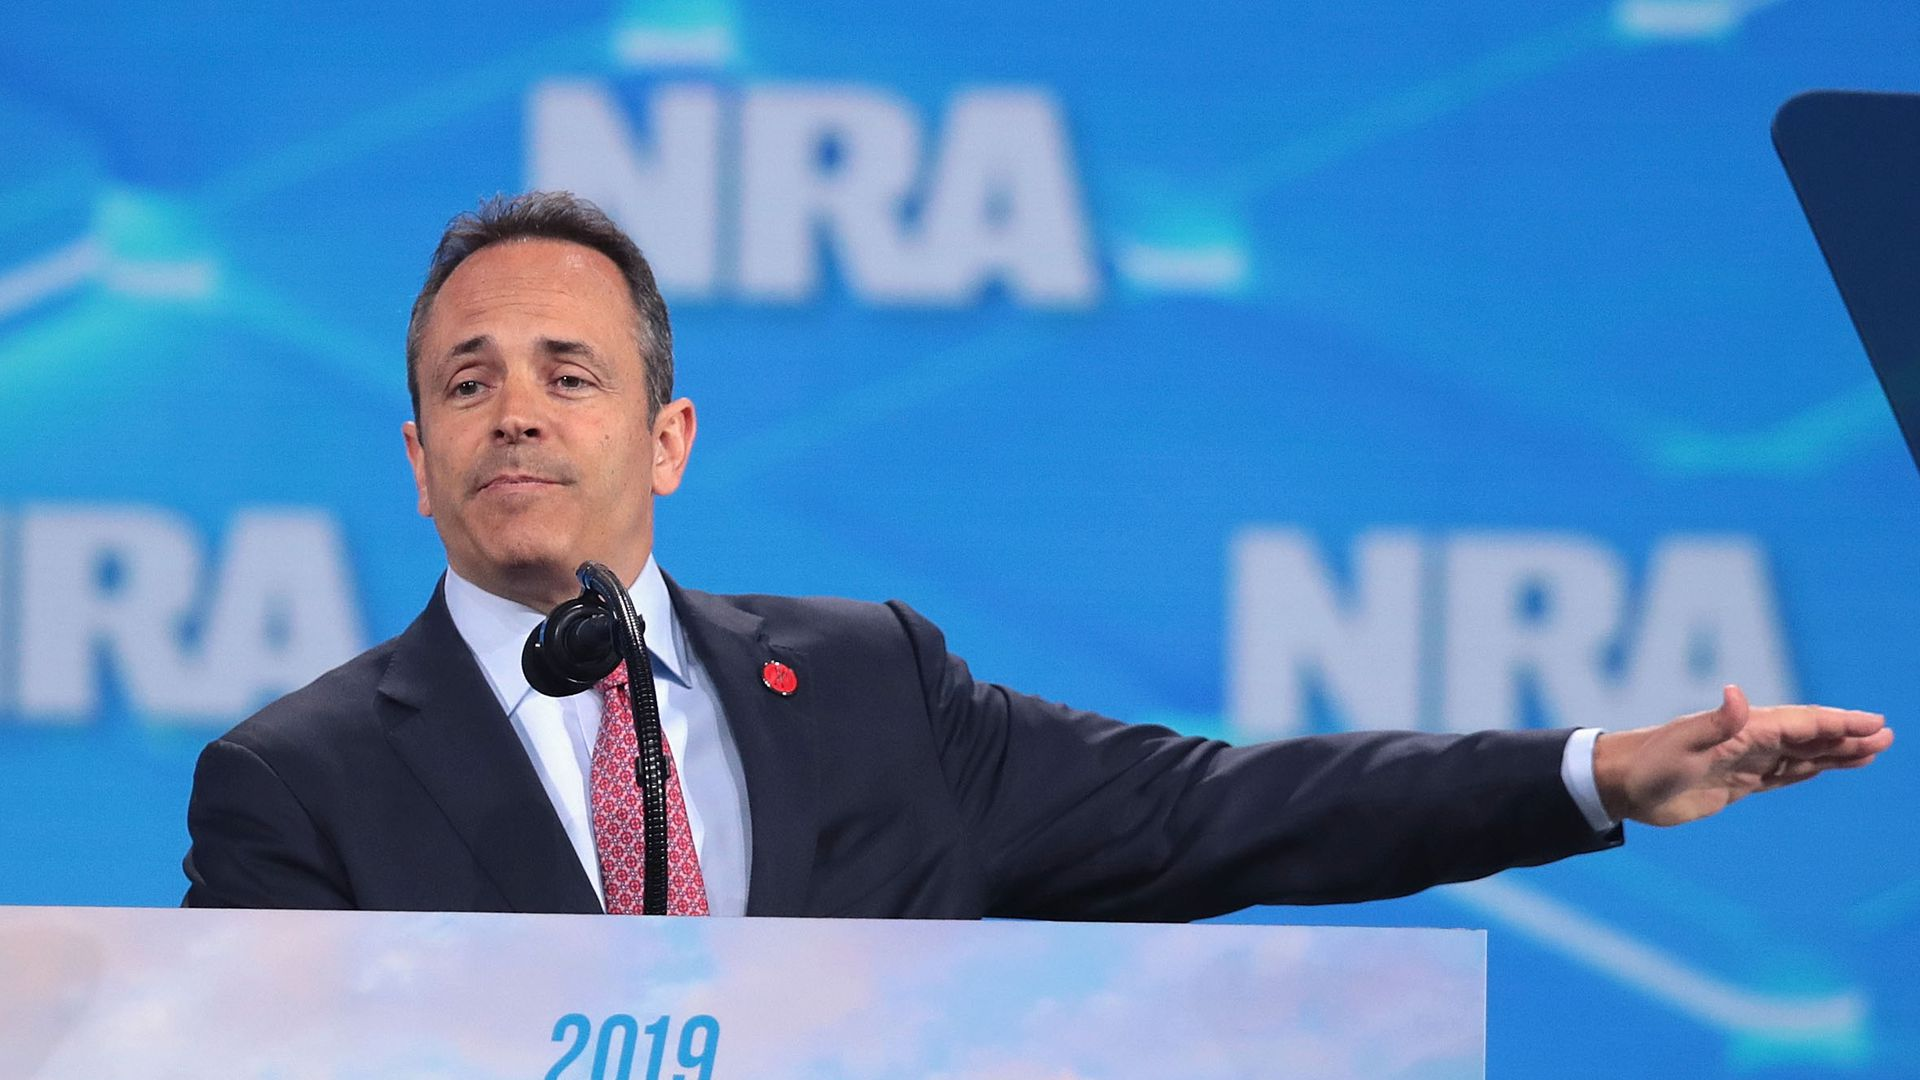 Kentucky governor Matt Bevin speaks to guests during the NRA-ILA Leadership Forum at the 148th NRA Annual Meetings & Exhibits on April 26, 2019 in Indianapolis, Indiana.